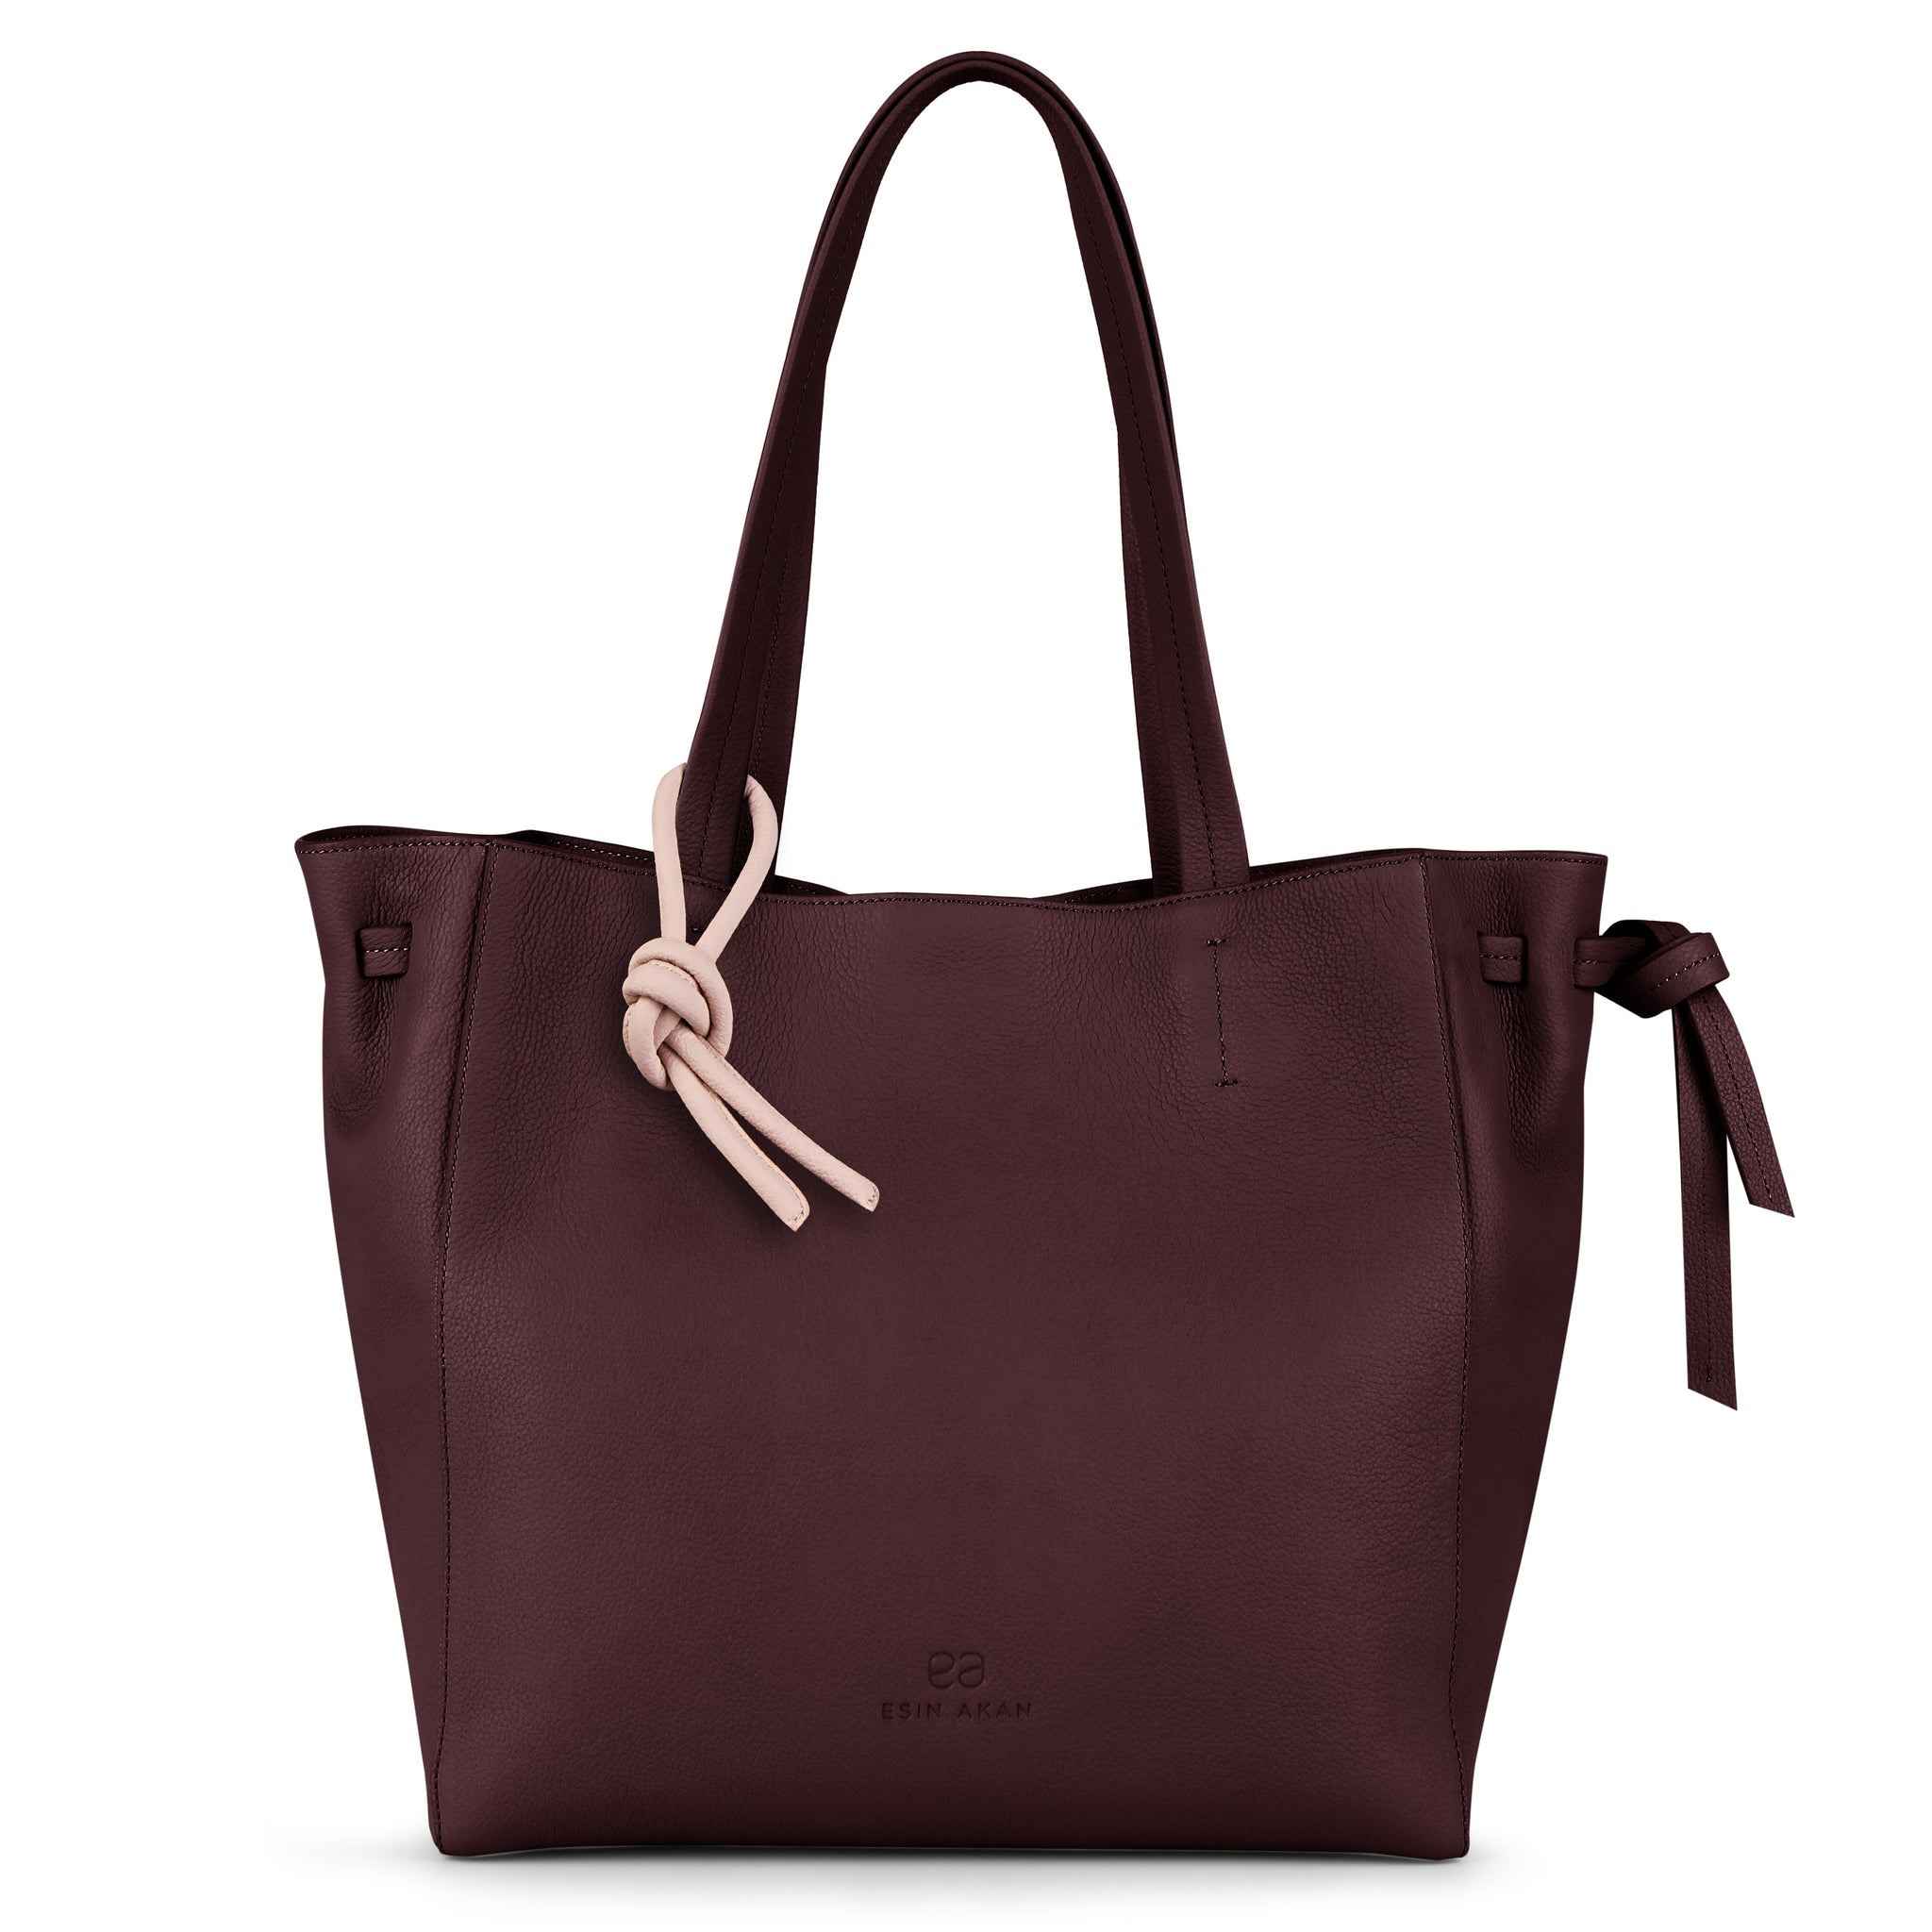 An expandable leather tote bag for women in burgundy and pink shown as a travel bag, front image.